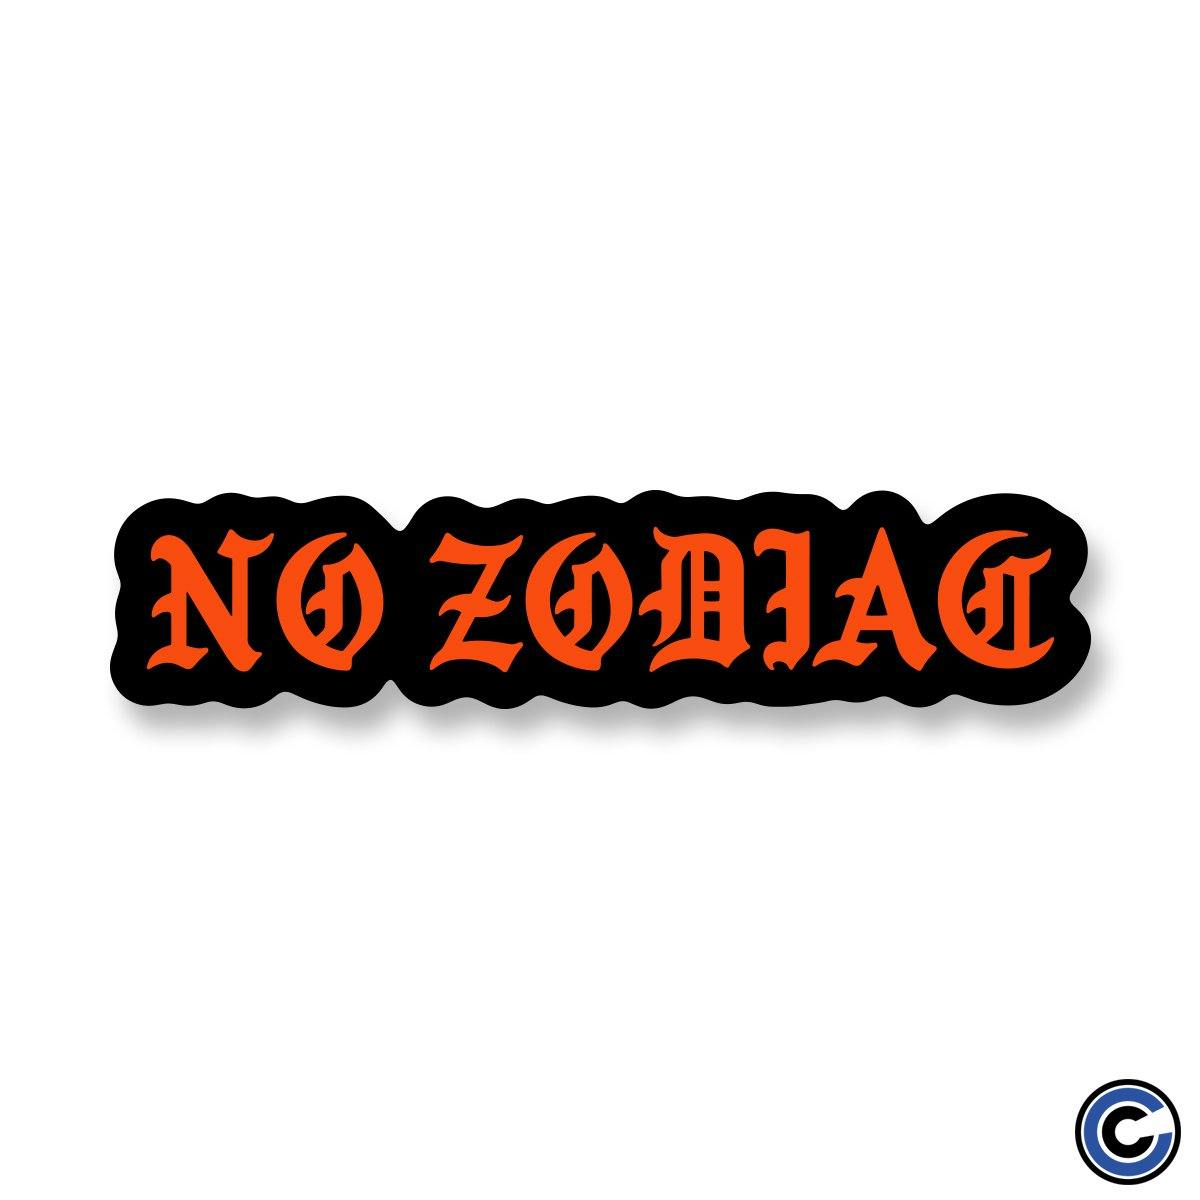 No Zodiac Blackletter Sticker